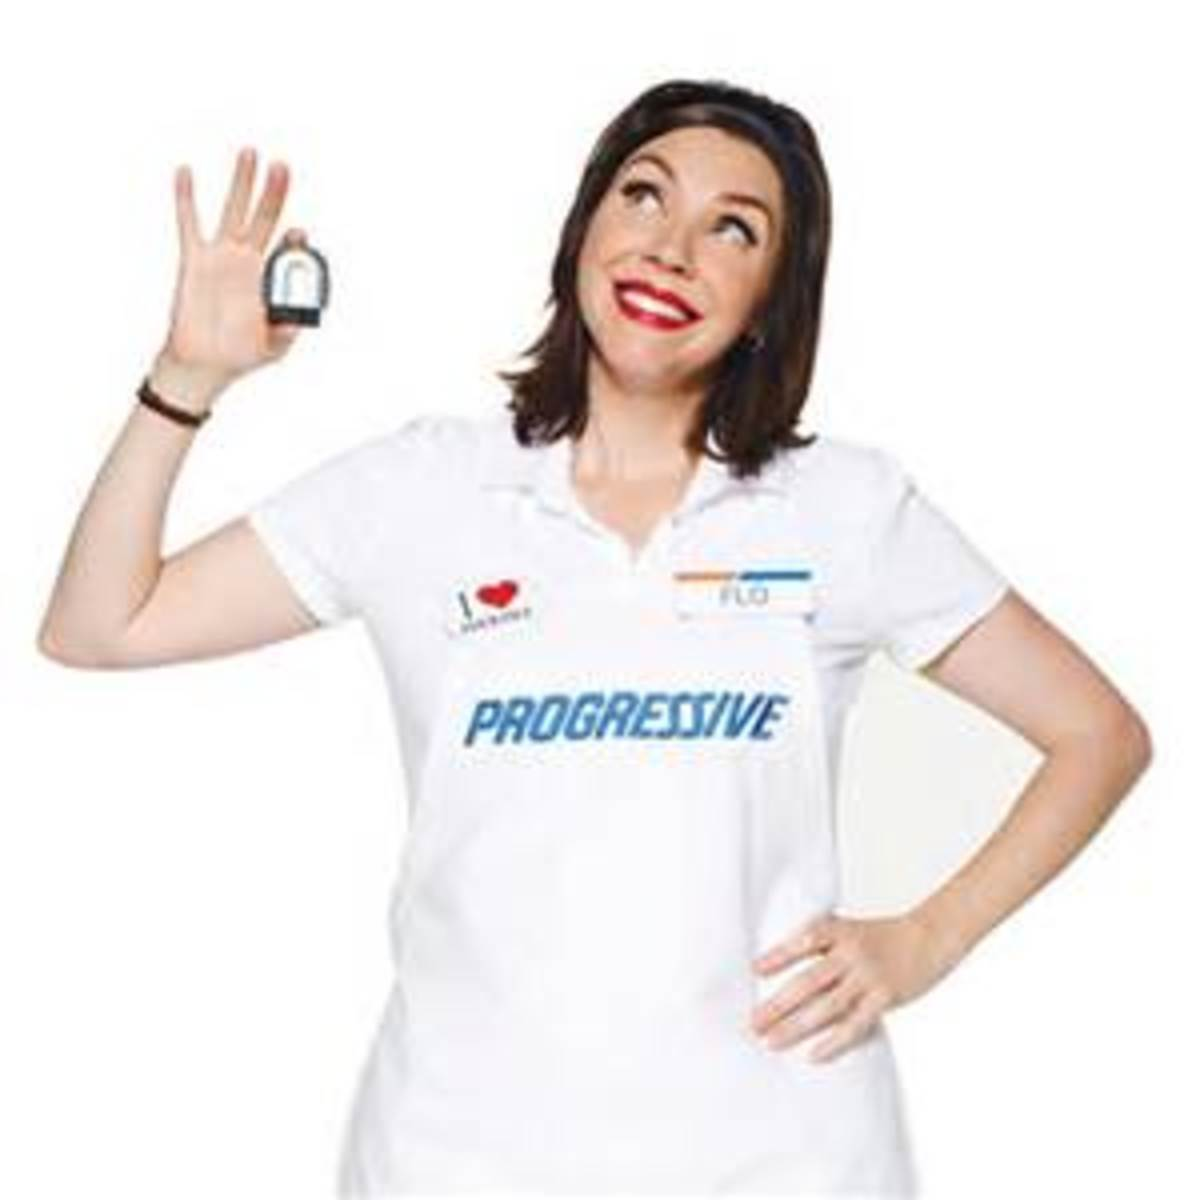 DIY Progressive Flo Halloween Costume